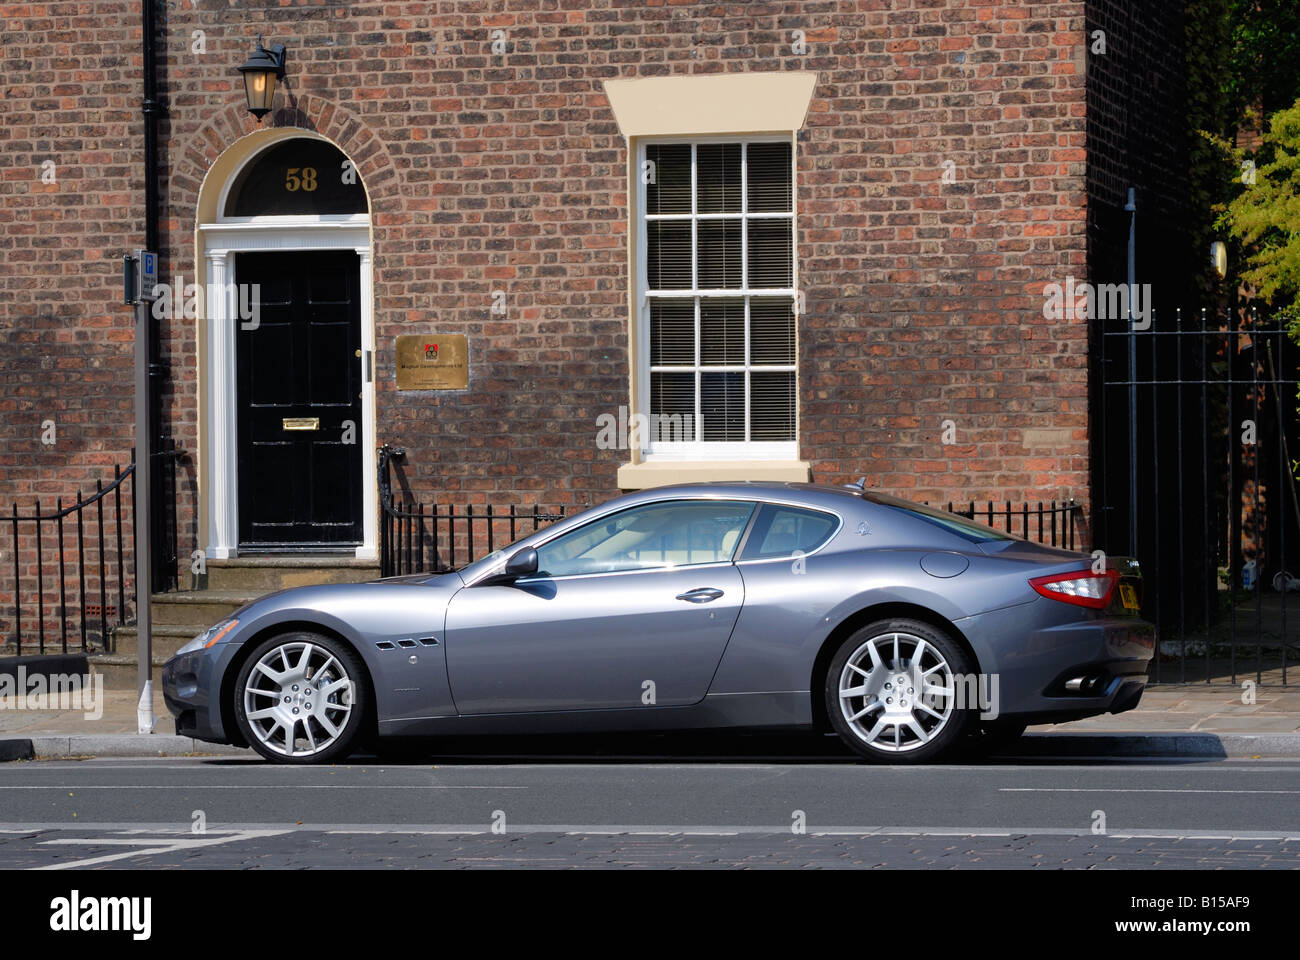 Prestige Car Parked Outside A Business Premises In Liverpool Centre On Hope  Street   Stock Image